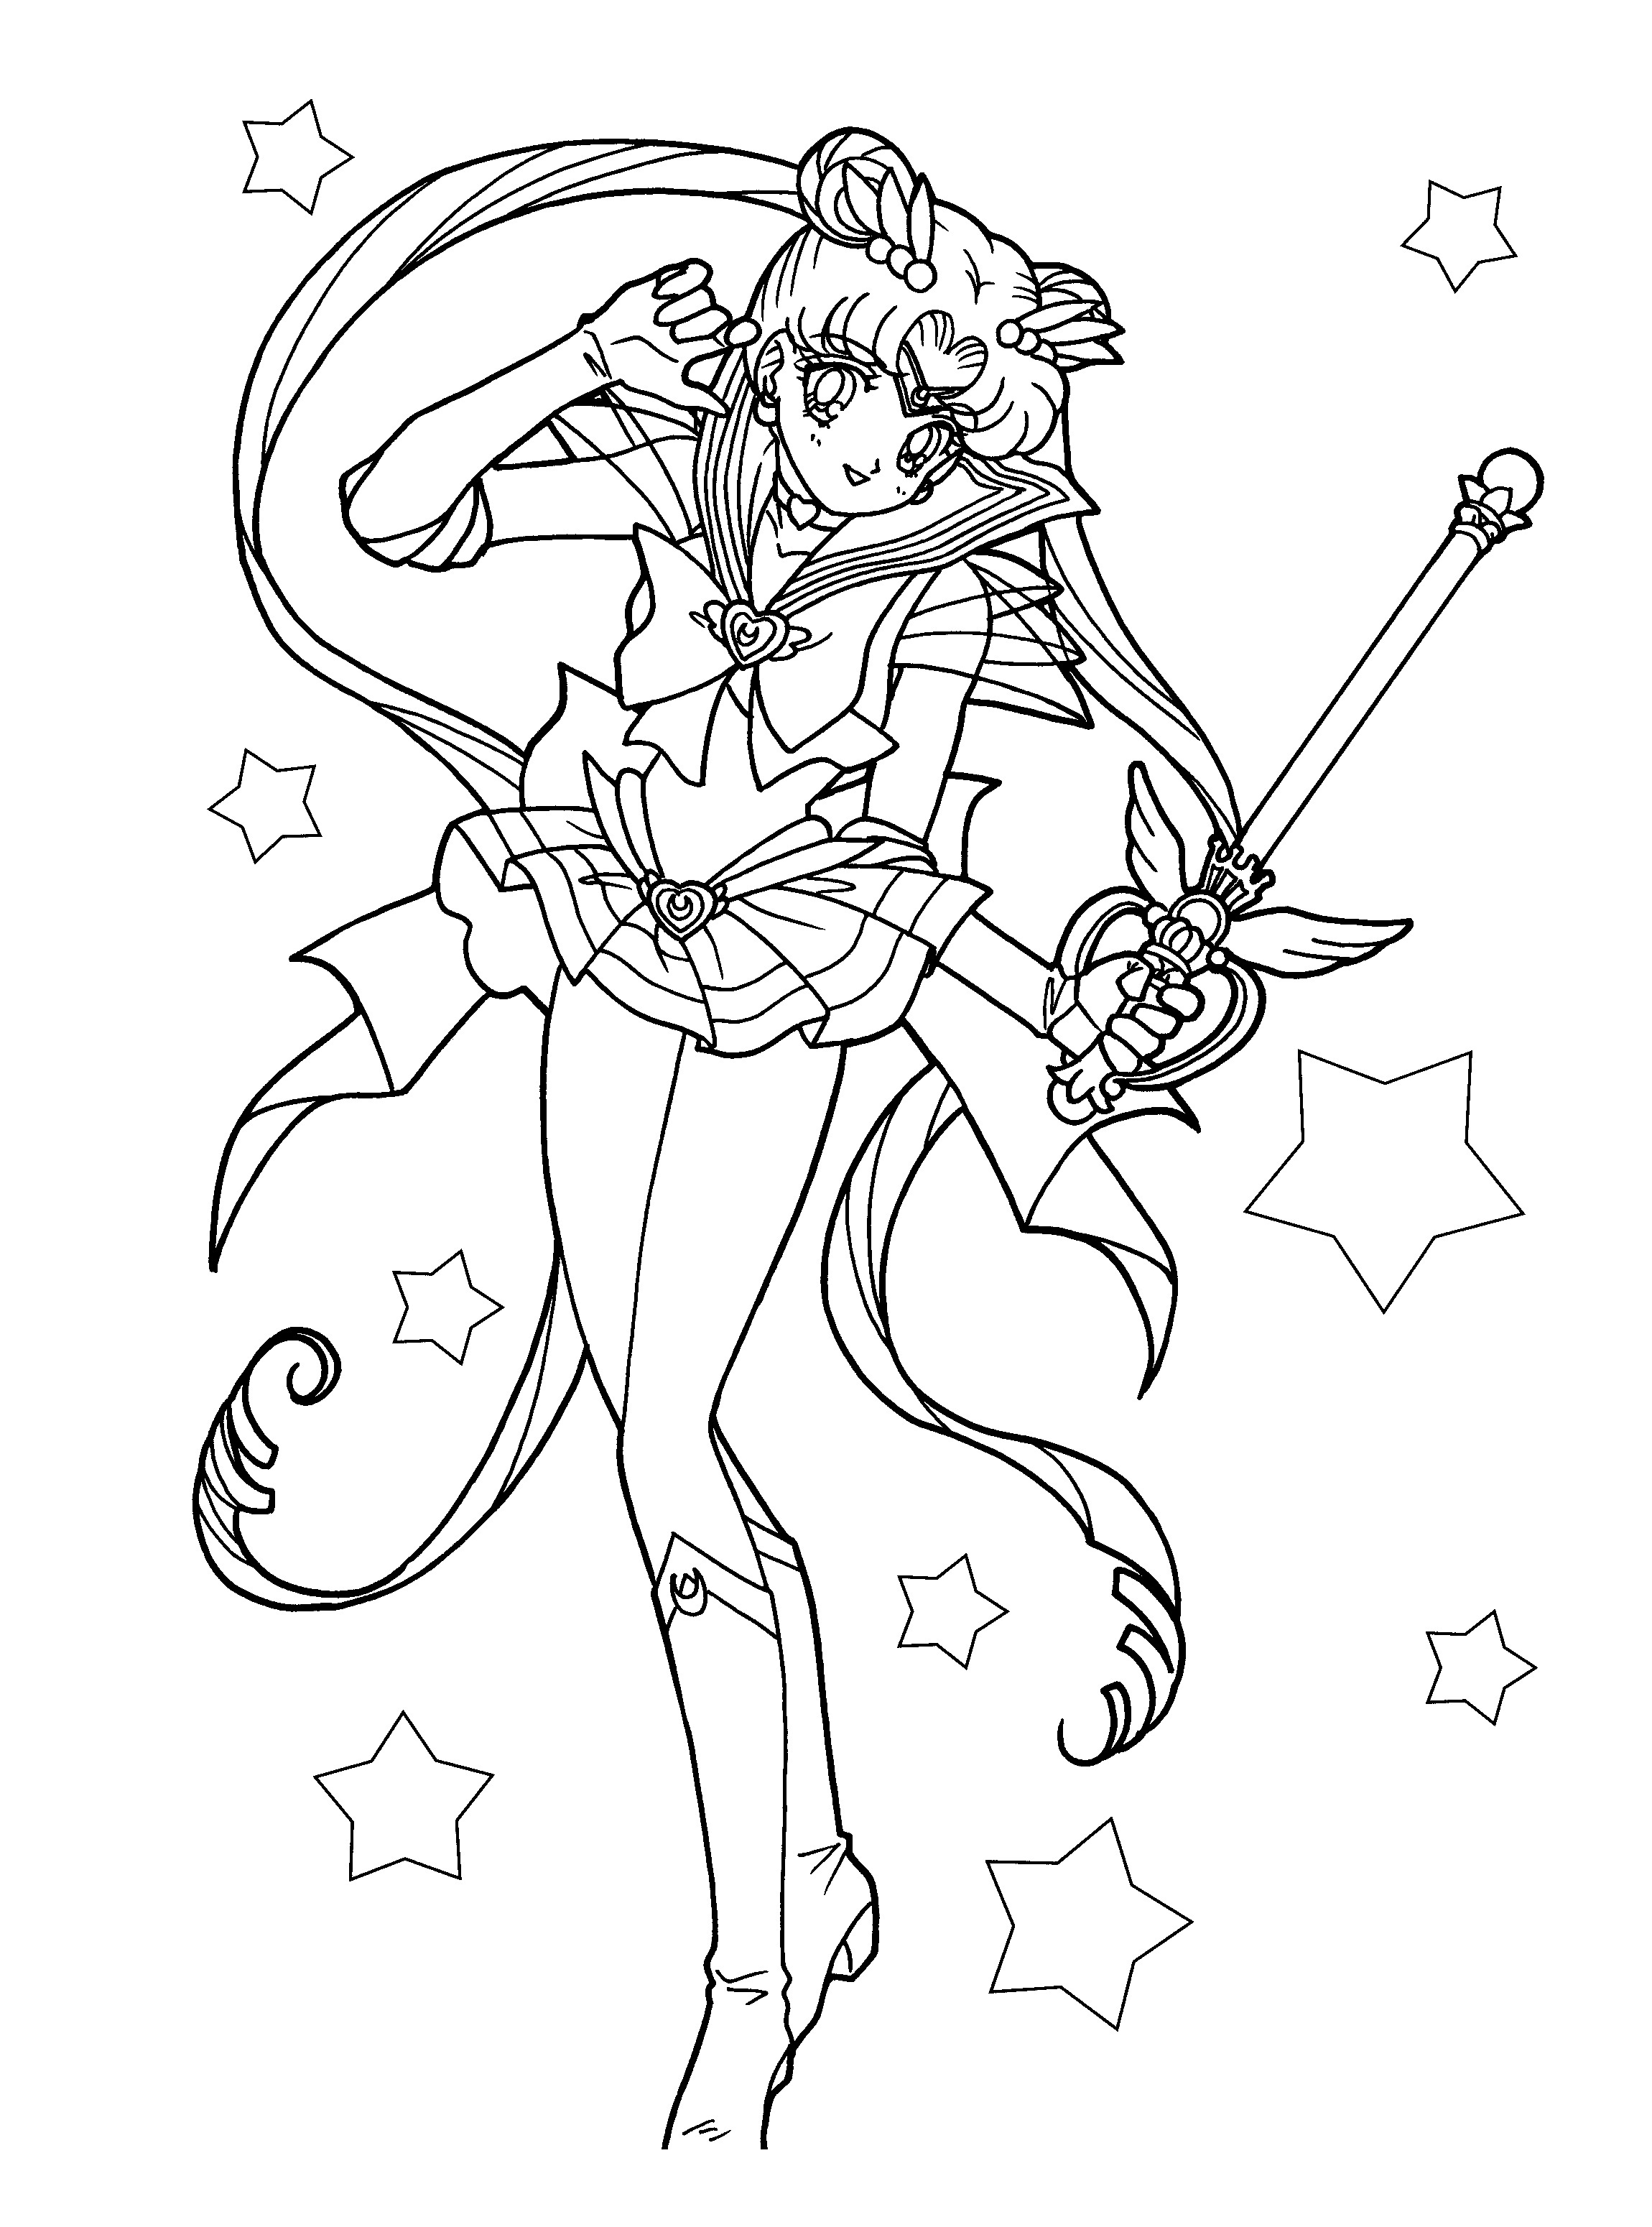 Sailor Moon printable coloring page - Coloring Library | 3100x2300